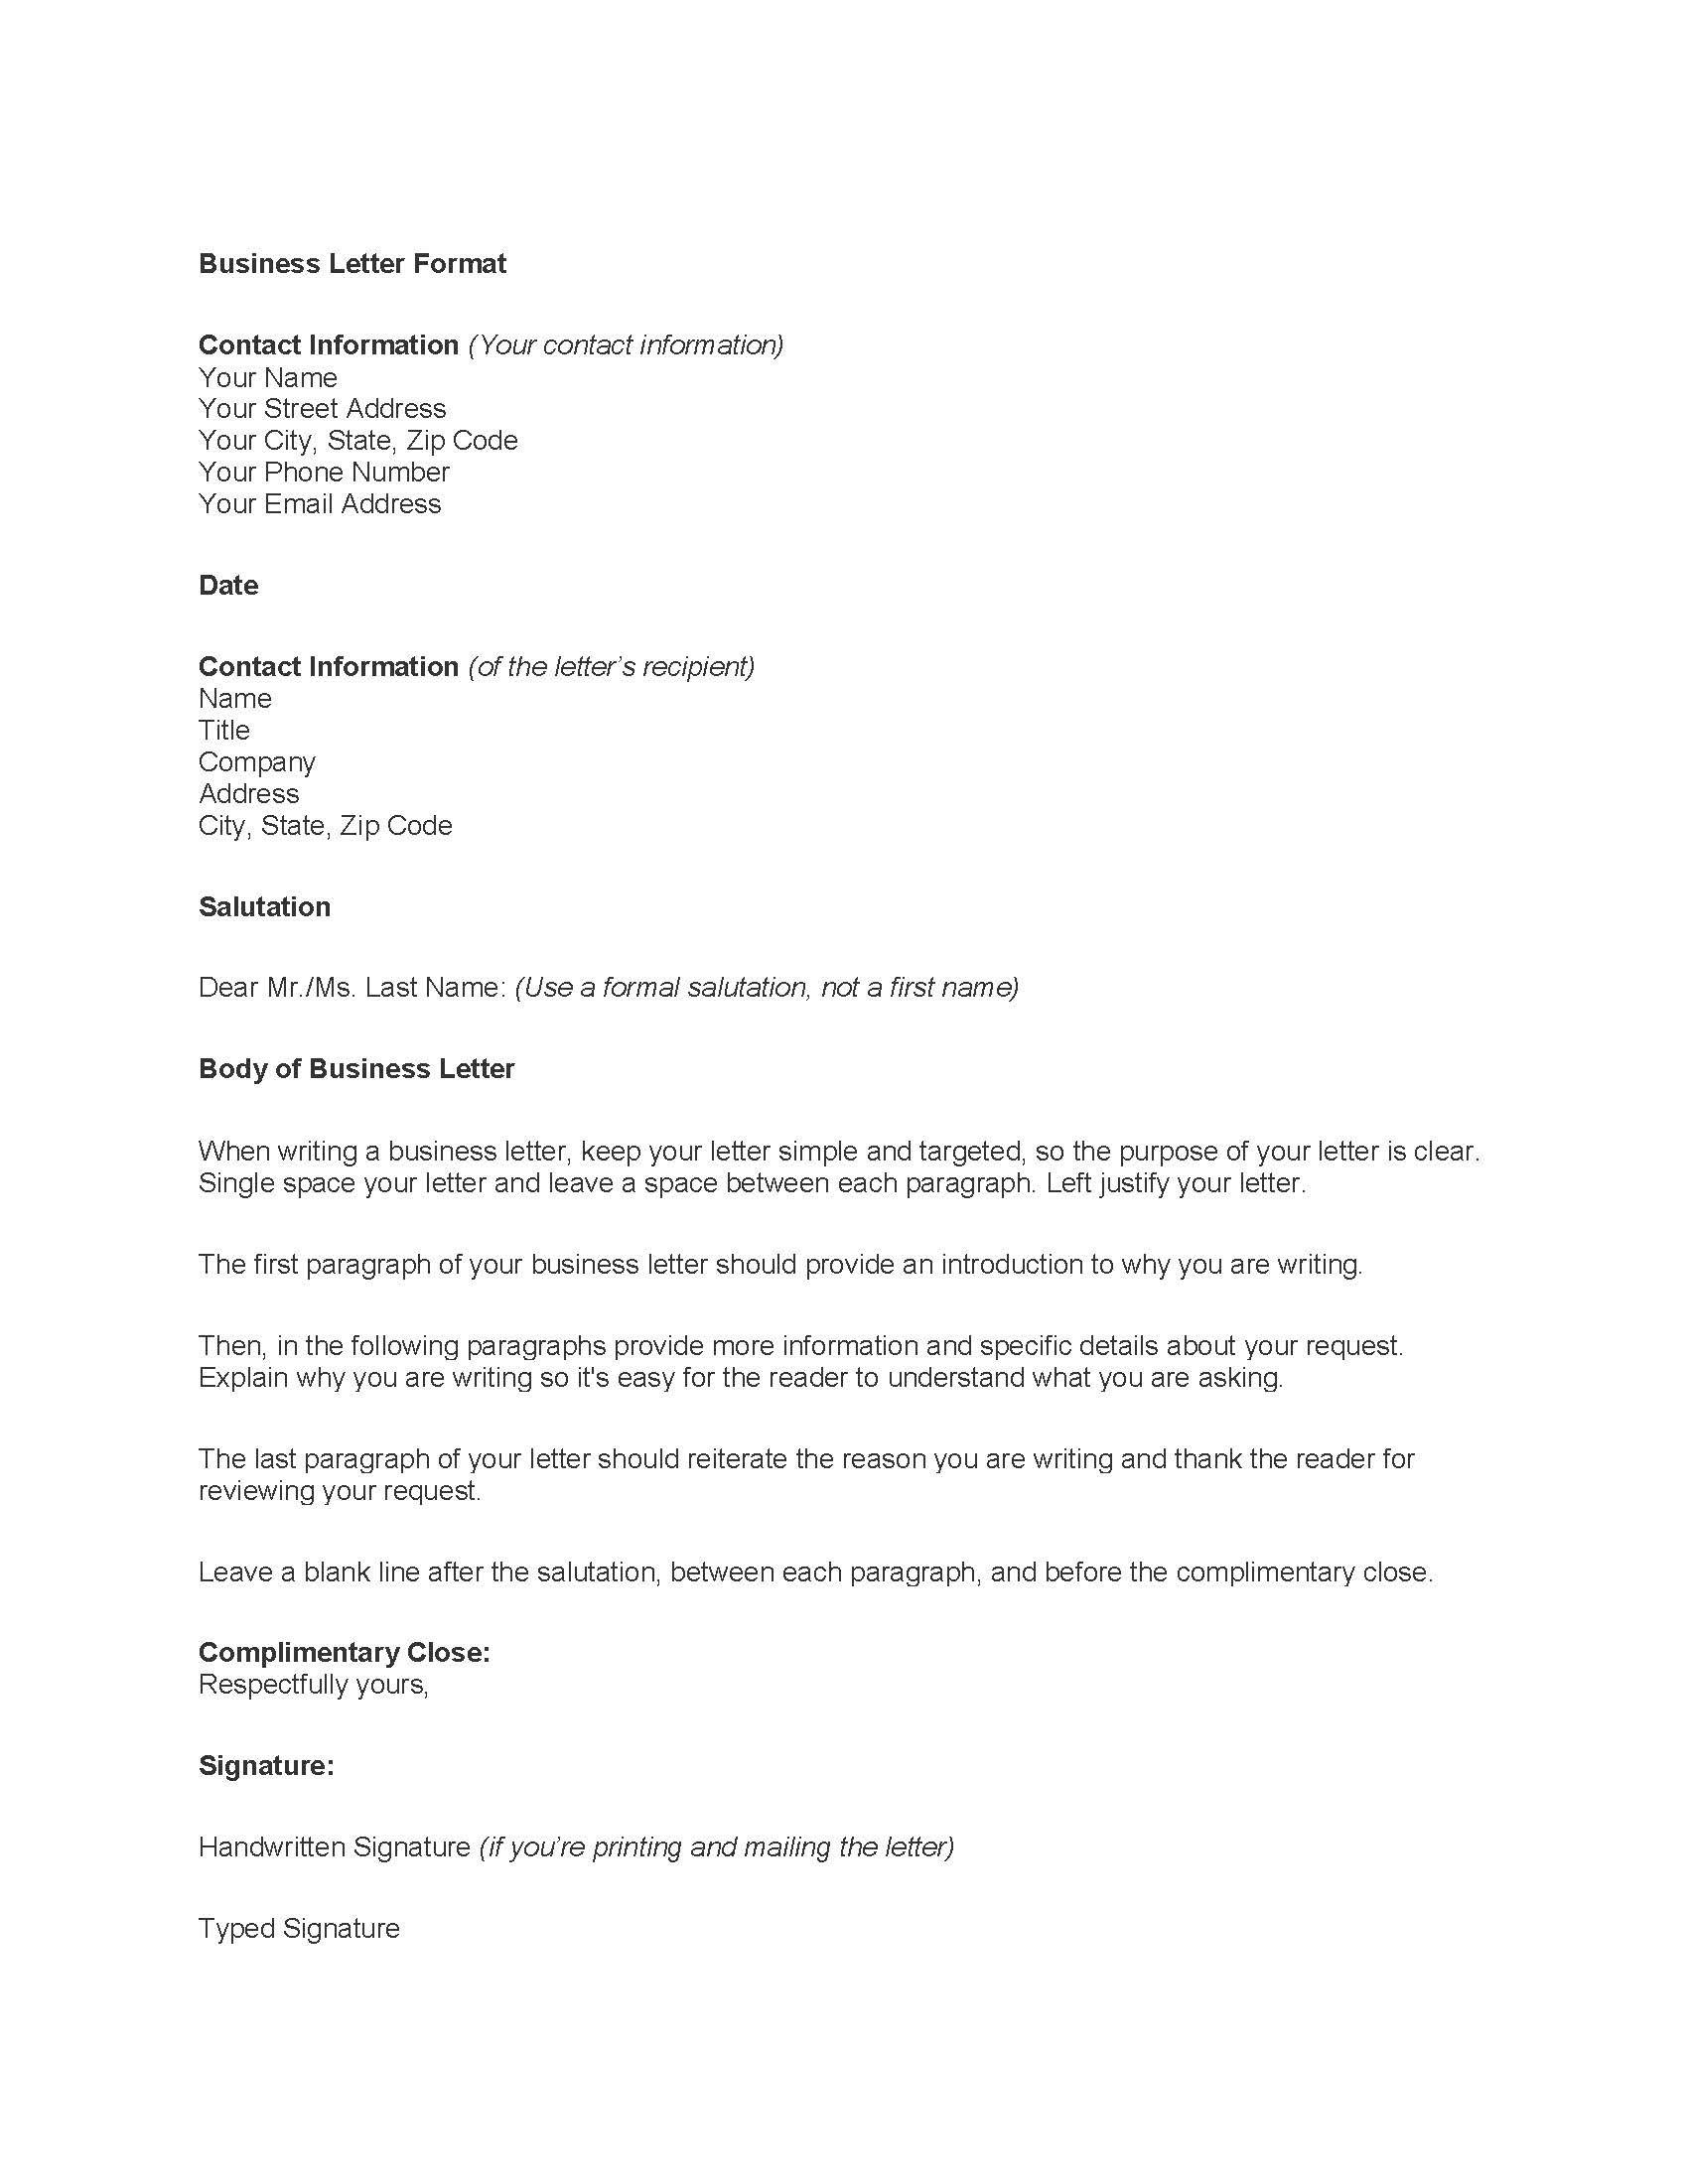 Radiology nurse cover letter architectural drafter examples nih radiology nurse cover letter architectural drafter examples nih green essay professional business template indexphp best essaycatid madrichimfo Images